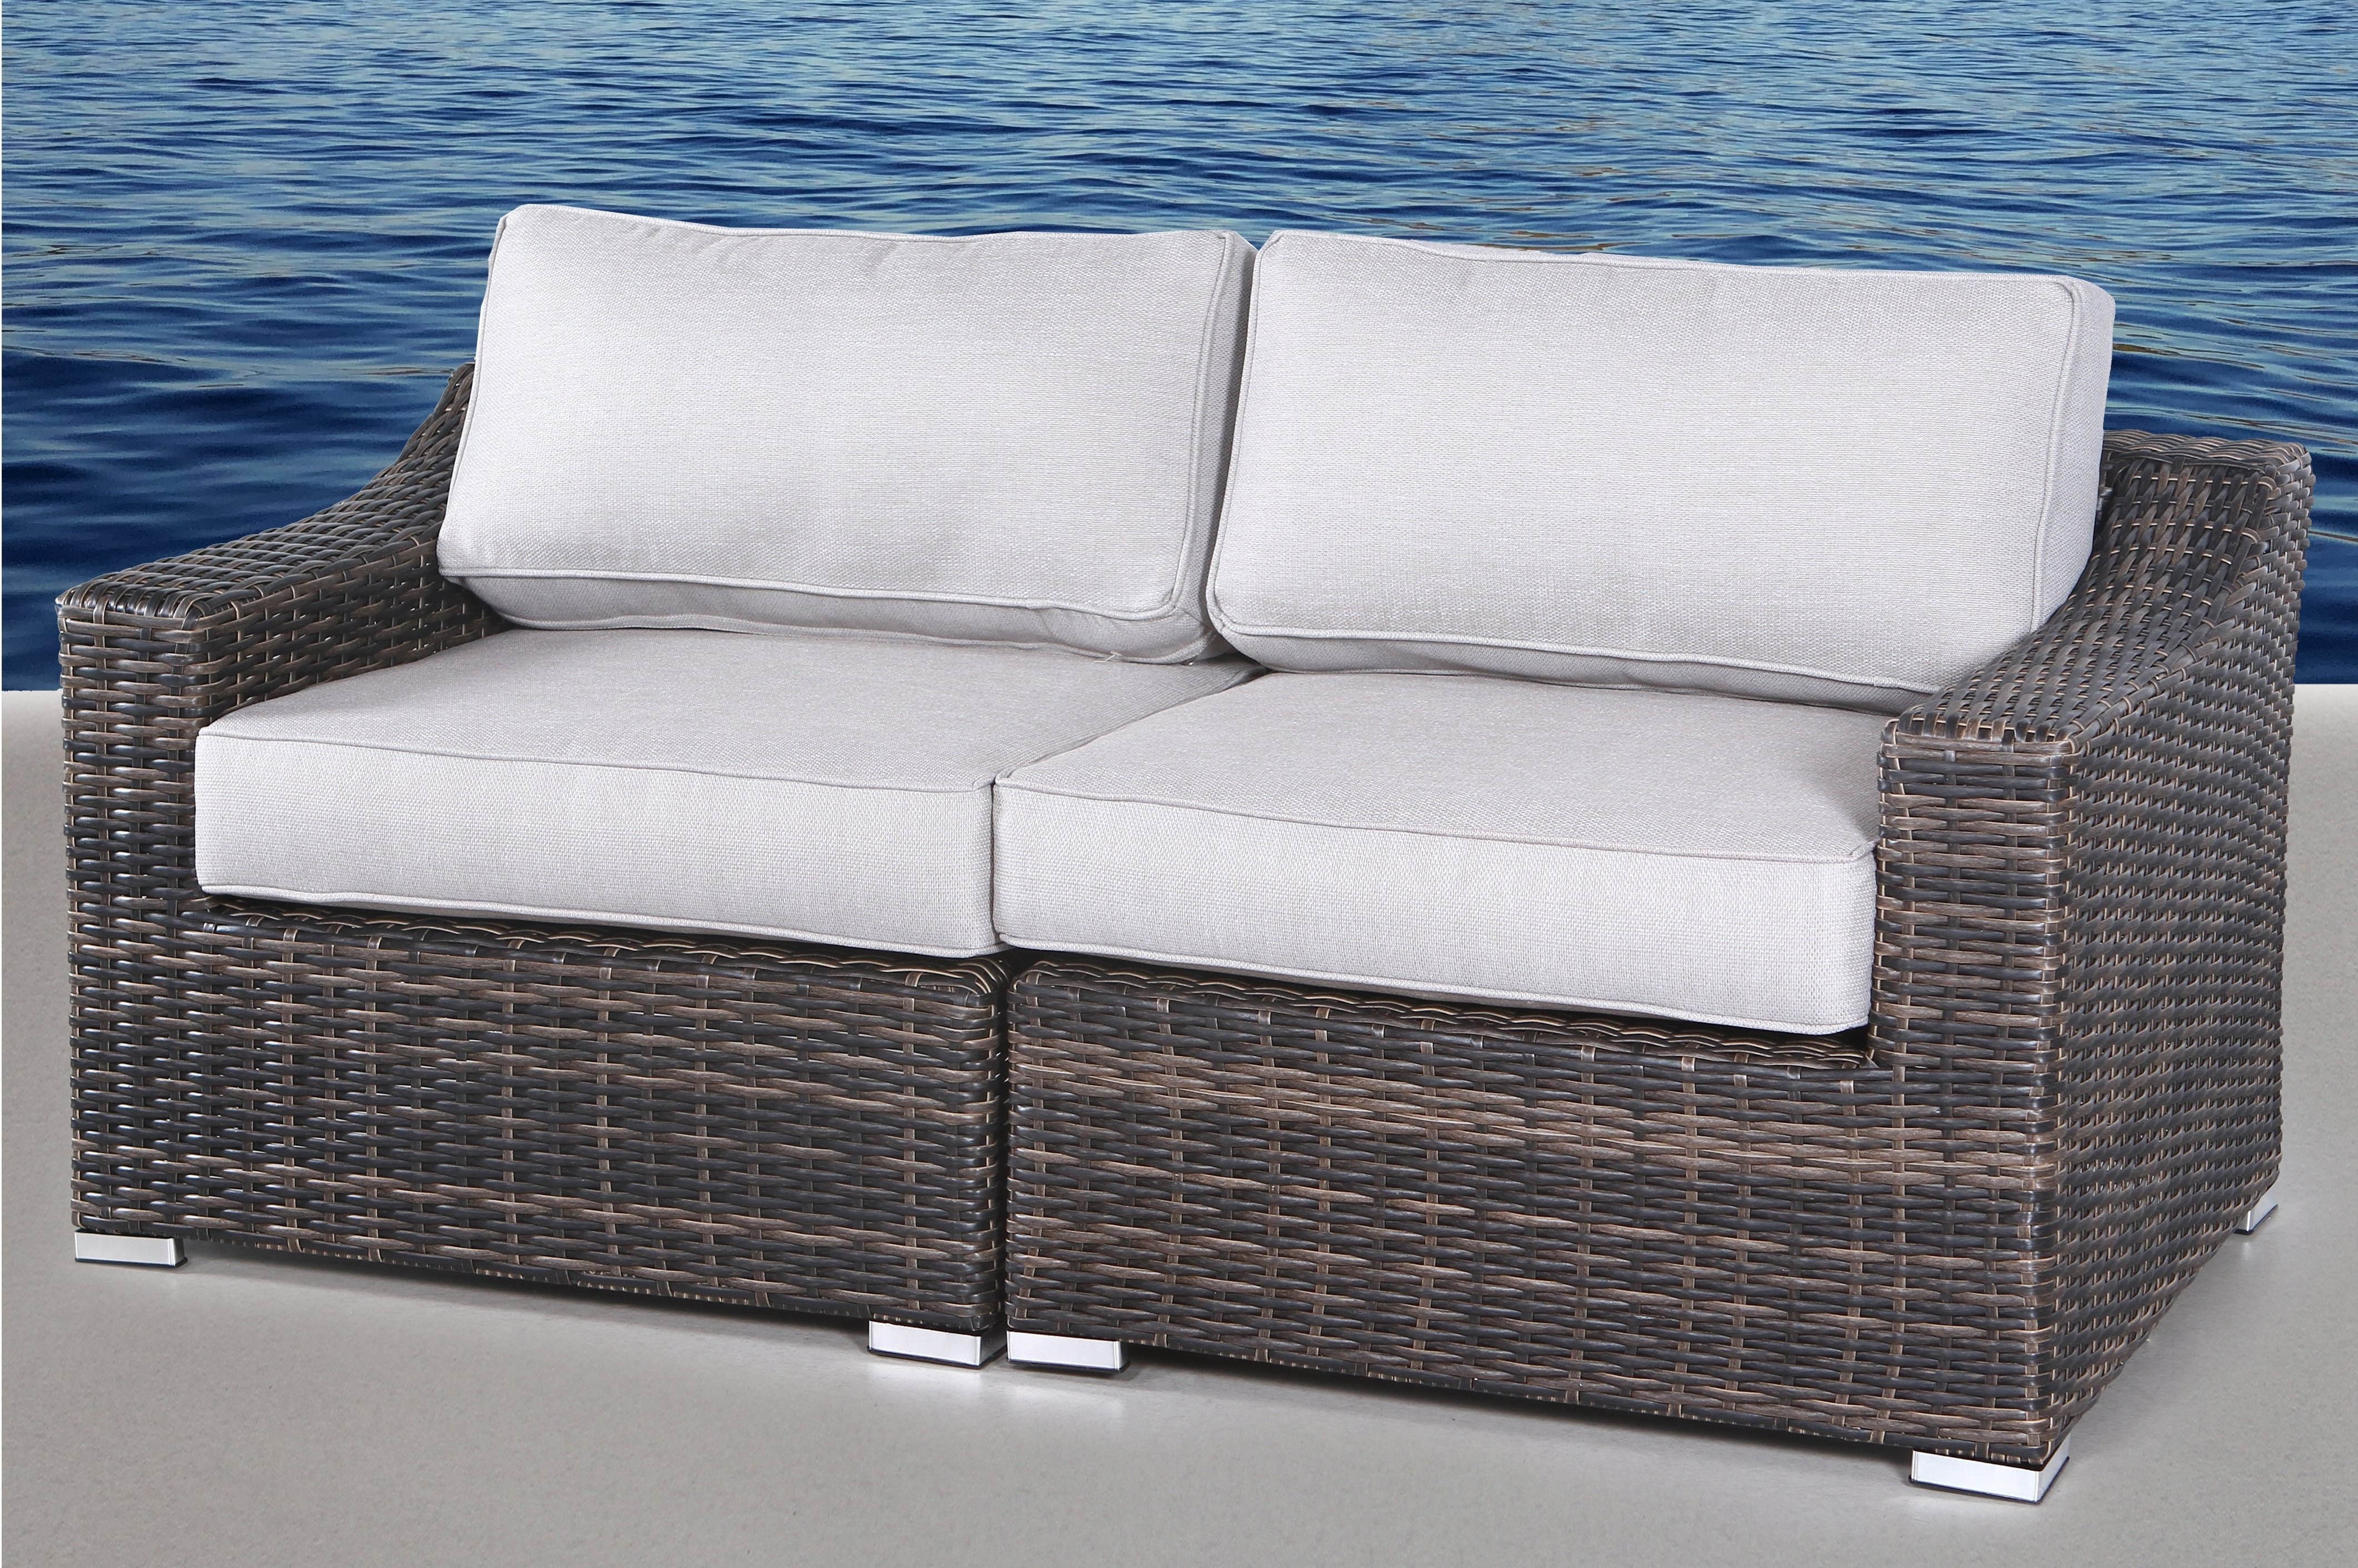 Huddleson Loveseat With Cushion With Regard To Famous Pantano Loveseats With Cushions (View 14 of 20)